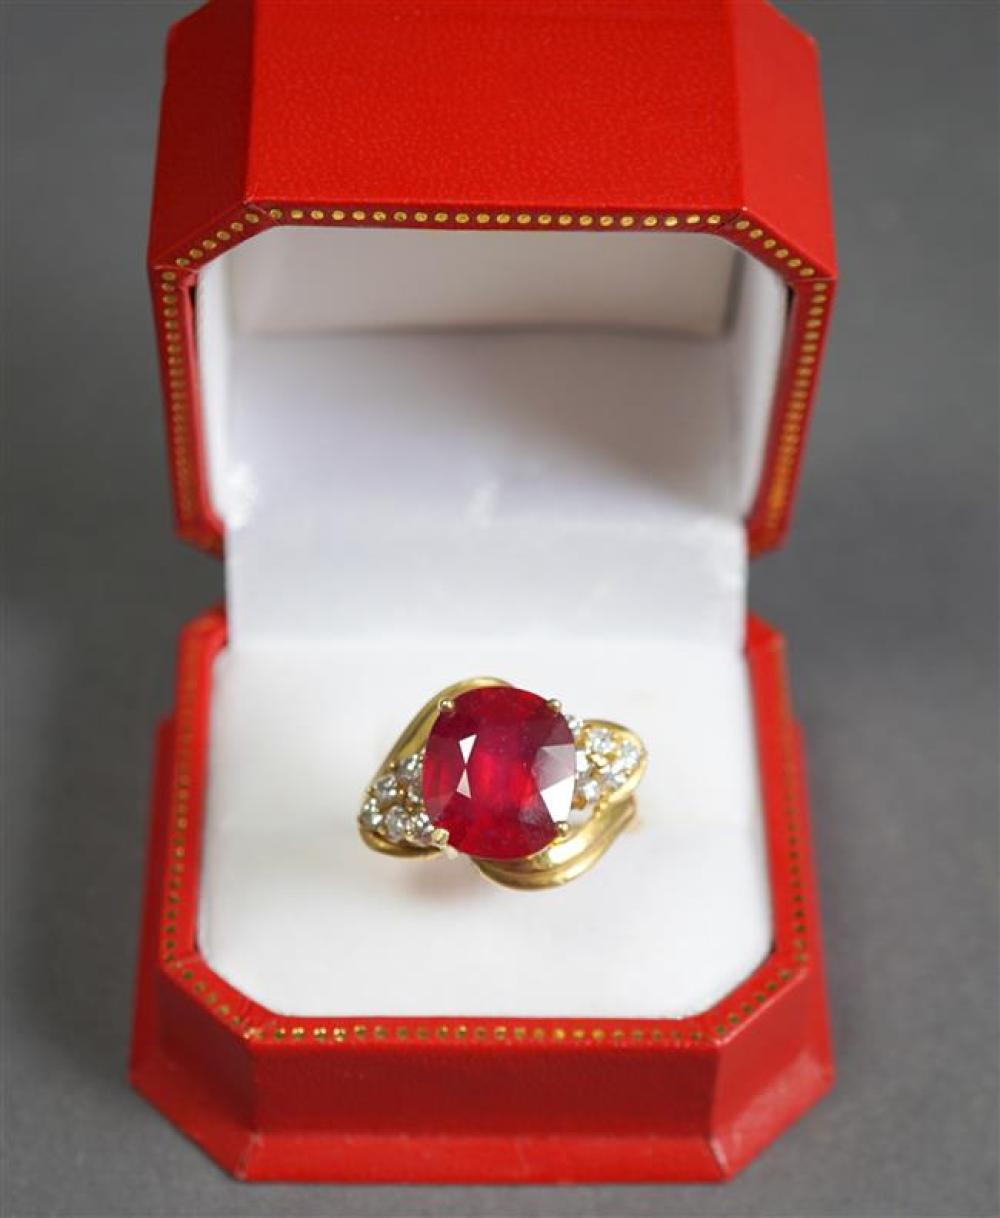 14-Karat Yellow-Gold, Ruby and Diamond Ring (ruby approx 7.25 carats), Size: 8-1/2; 6.8 gross dwt